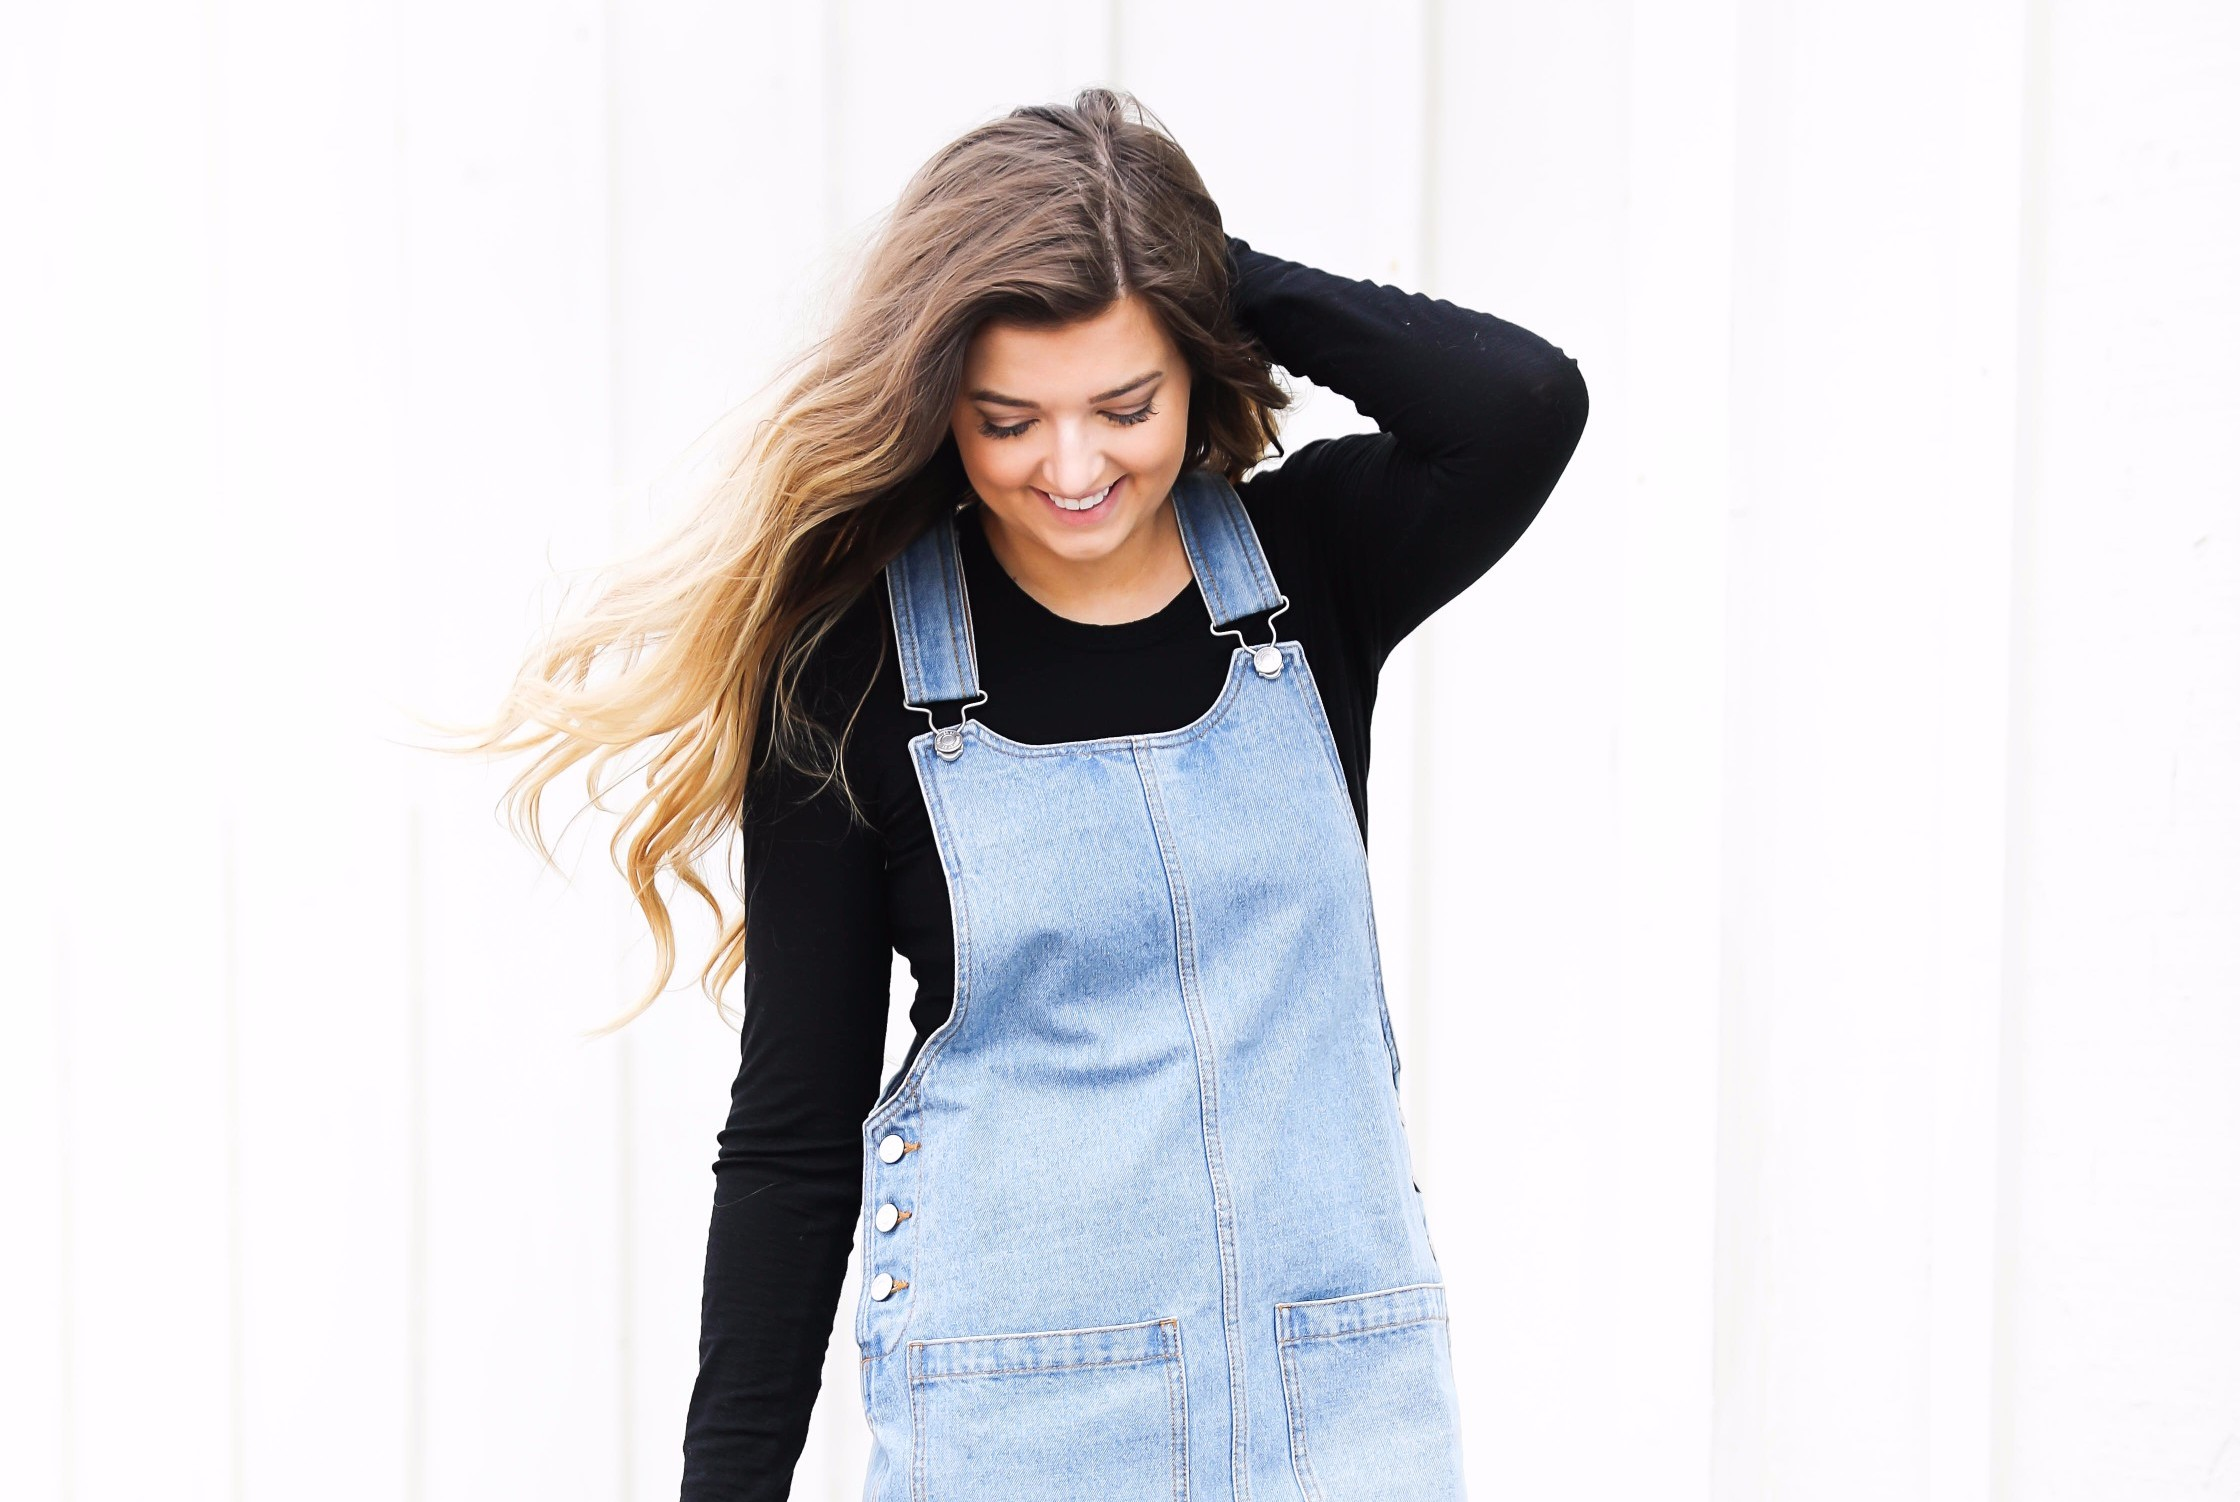 Overall dress and black floppy hat and black booties on fashion blog daily dose of charm by lauren lindmark 4P6A7303.jpg